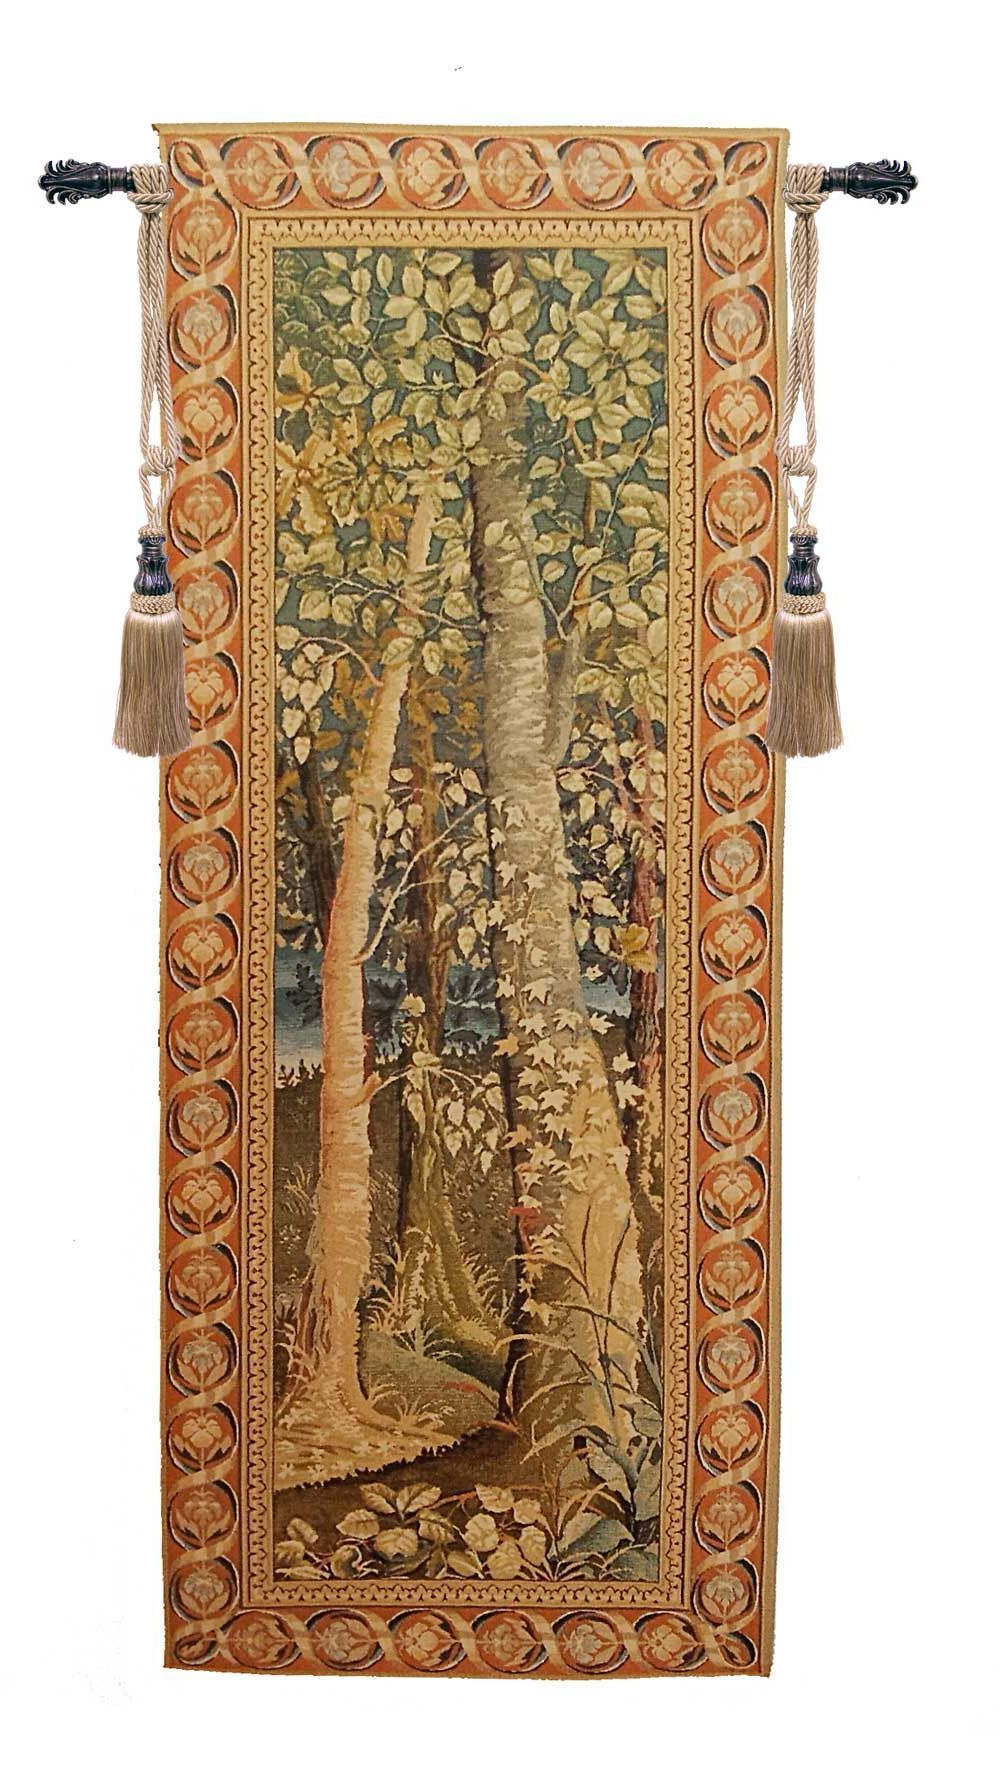 Pin On Tapestries And Wall Hangings Pertaining To Well Liked Blended Fabric Mucha Spring European Wall Hangings (View 9 of 20)